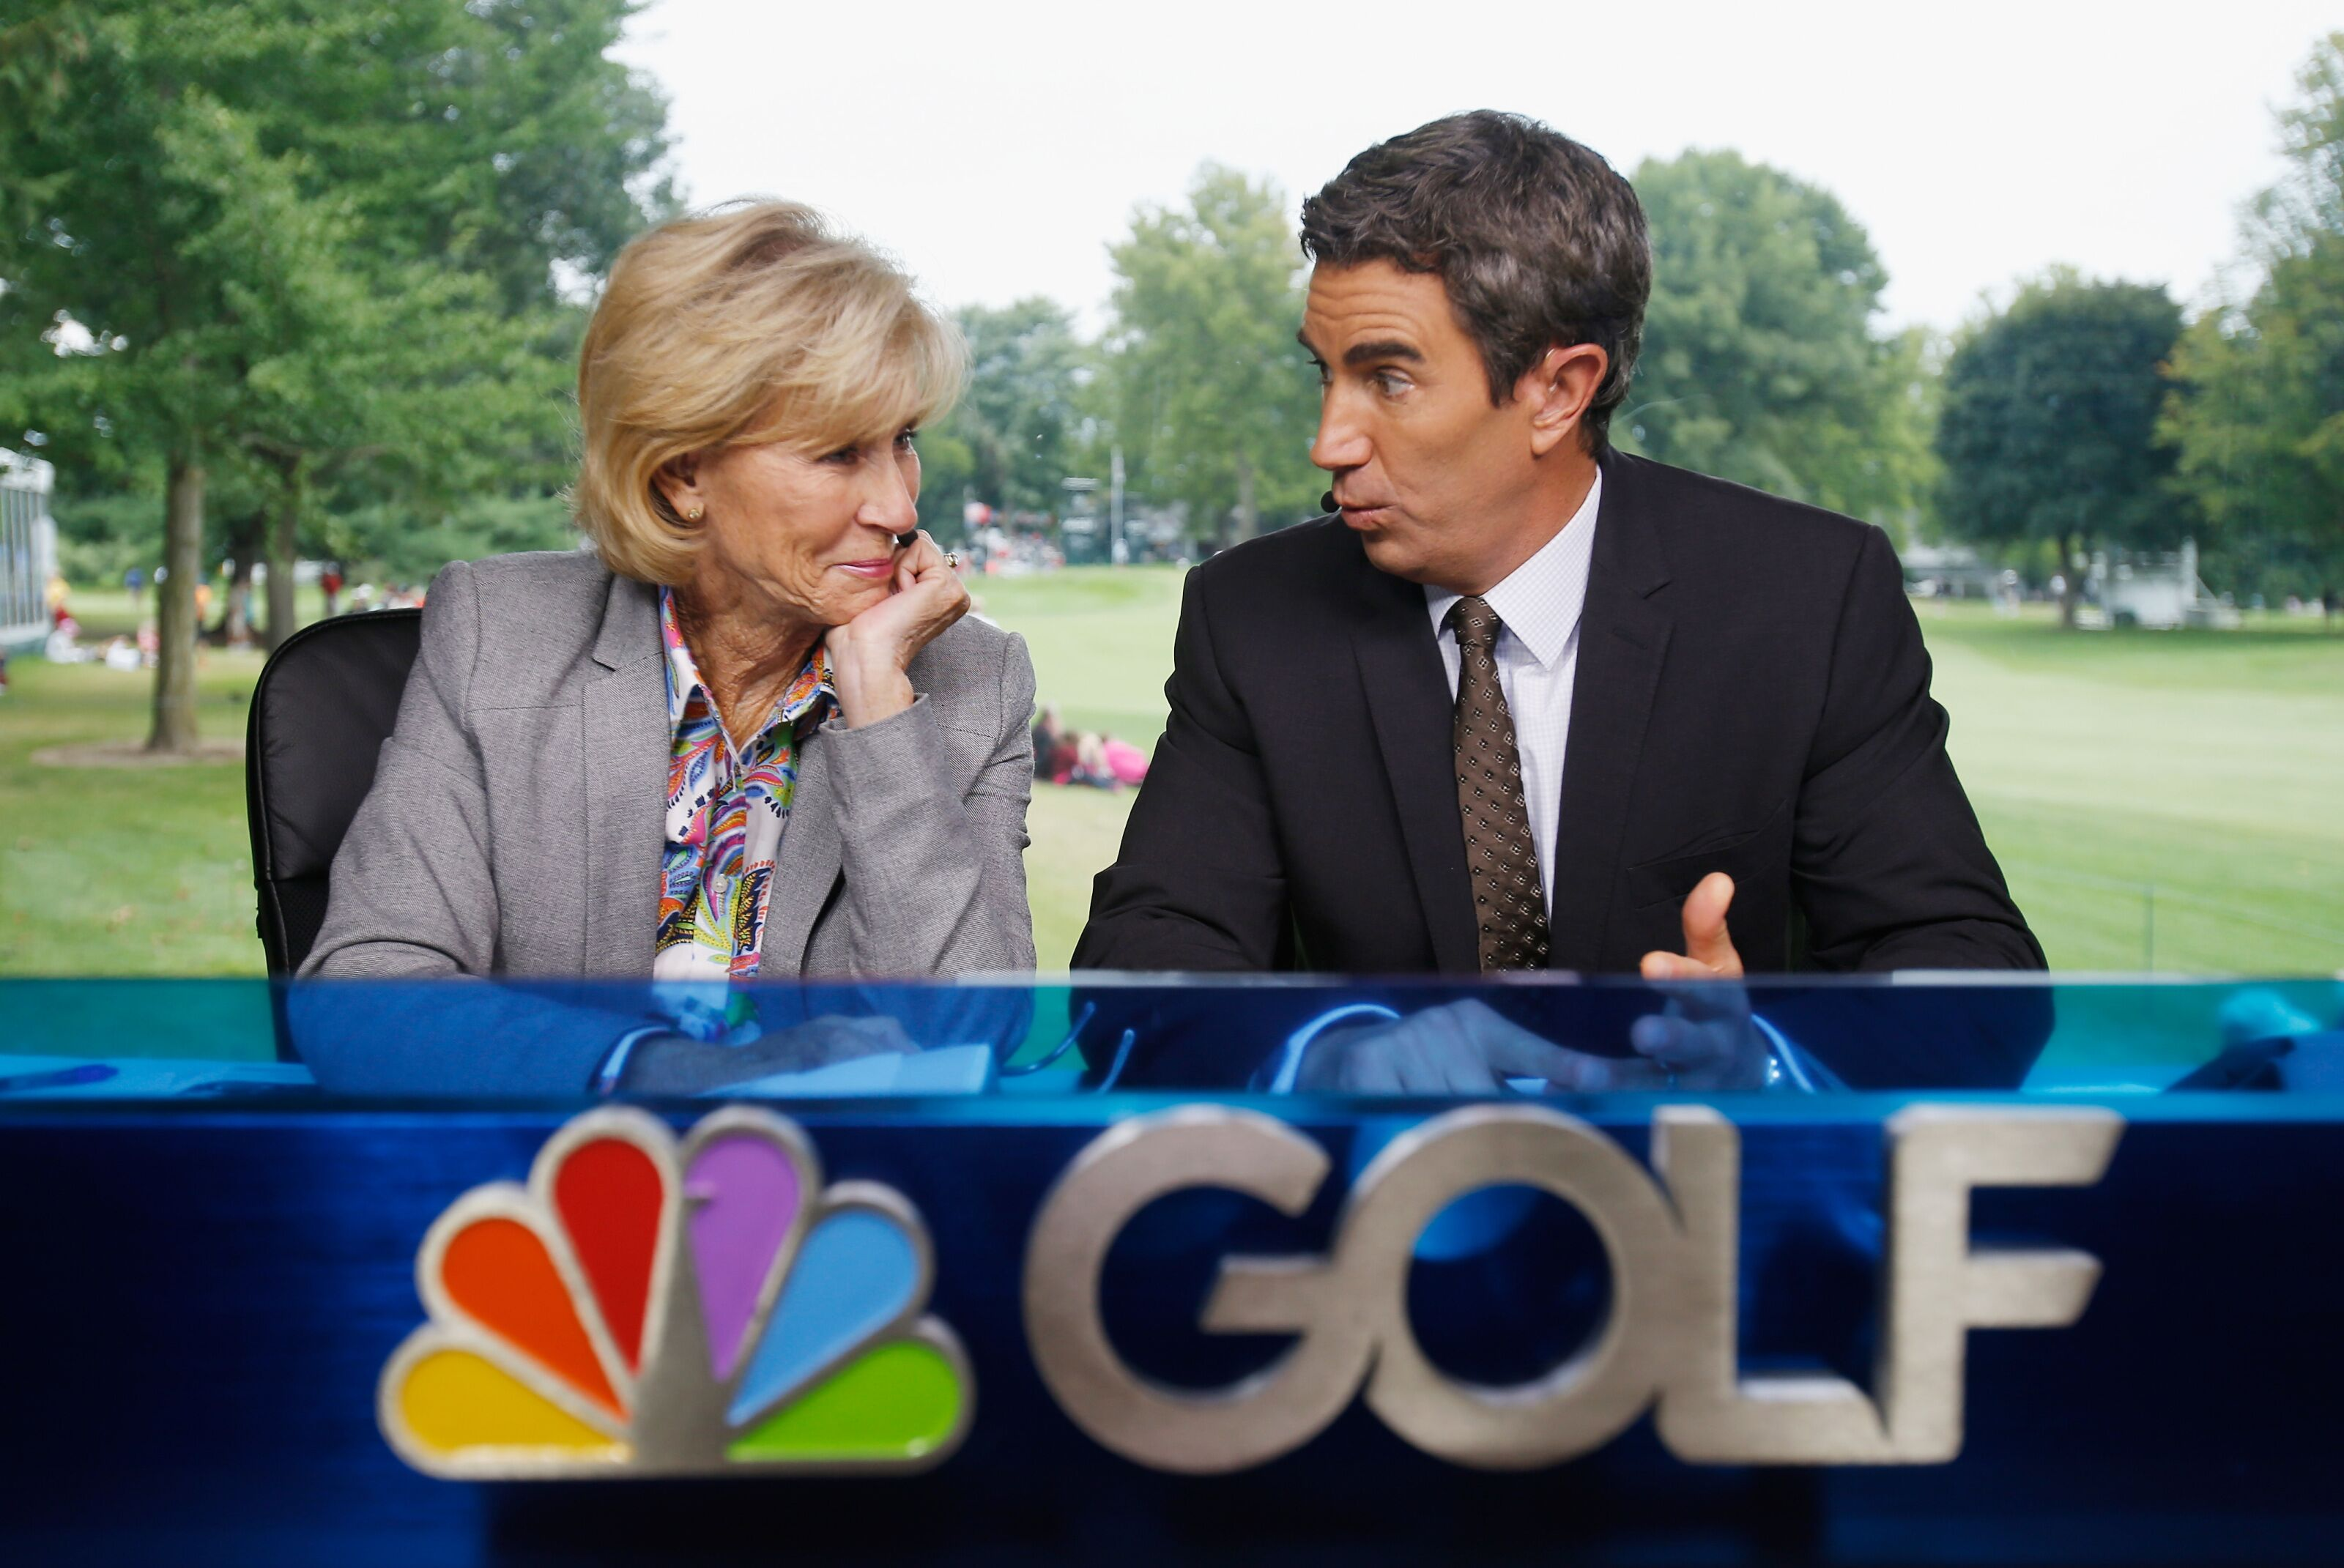 Golf Channel, listen up! The ForeGals readers are talking to